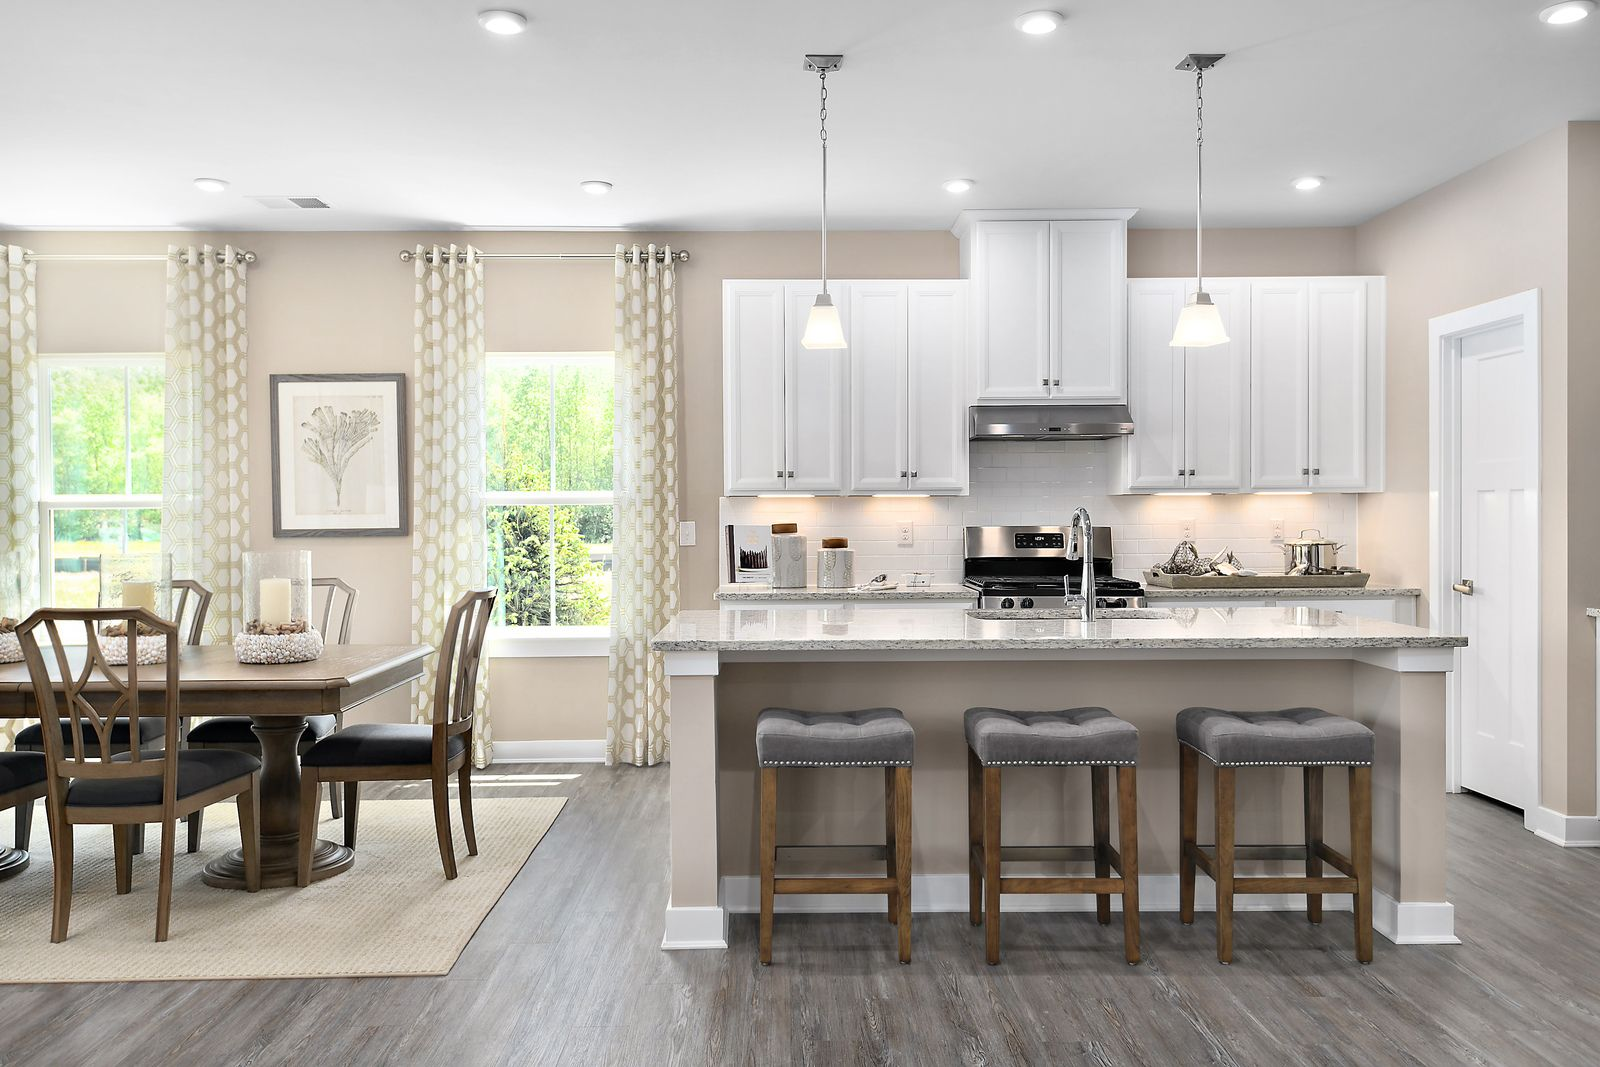 Kitchen featured in the Ashbrooke By Ryan Homes in Sussex, DE